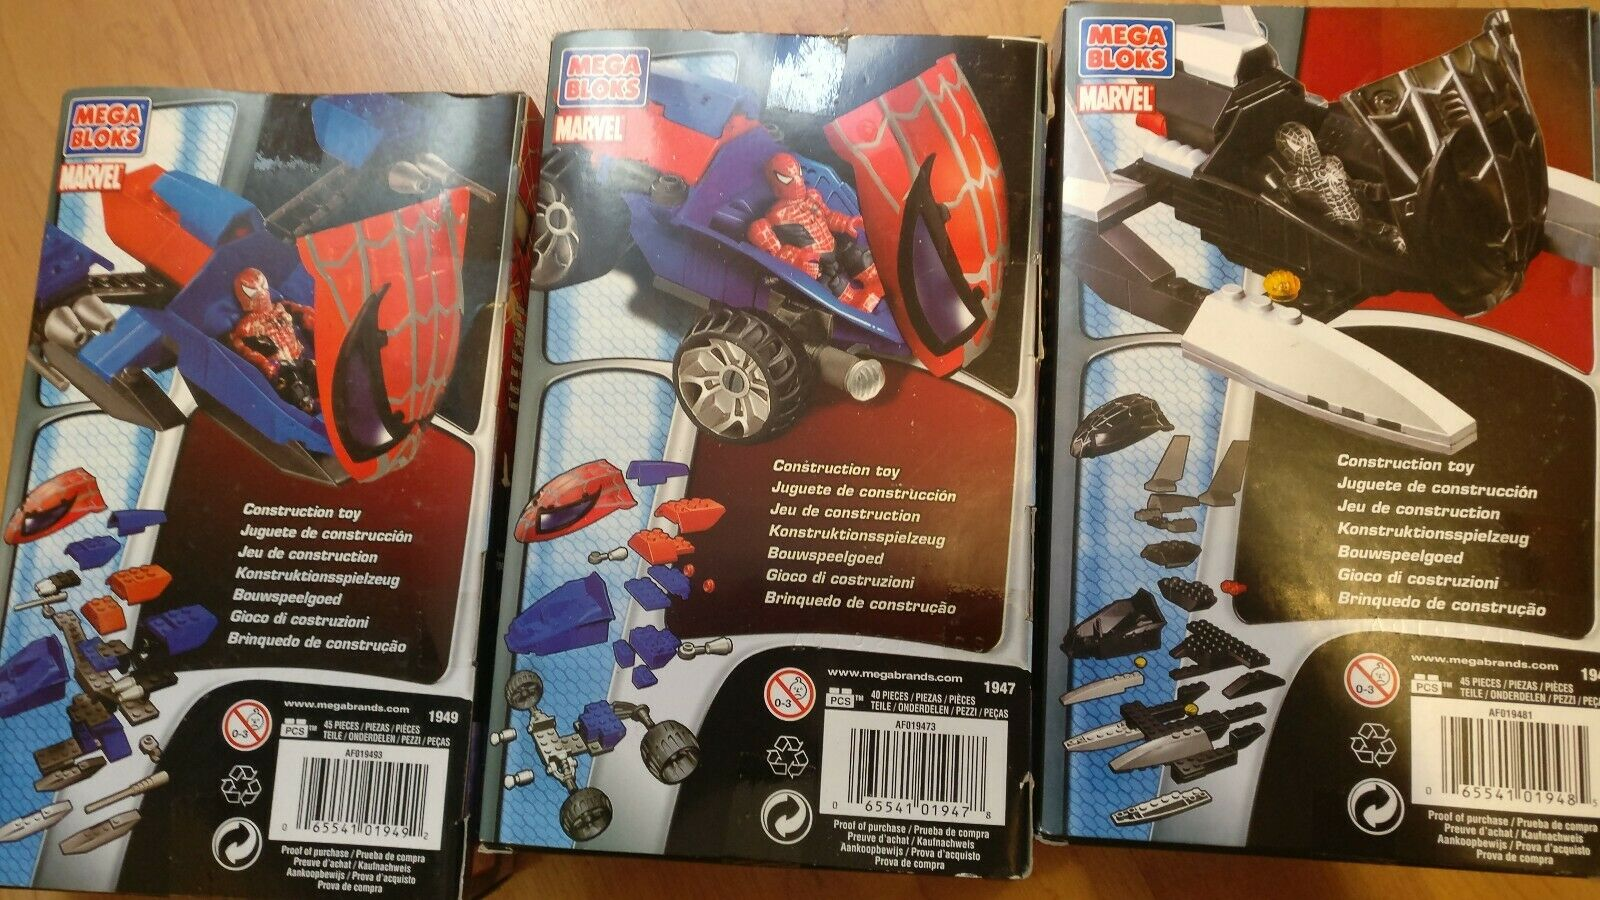 Spider-Man Spider-Man Spider-Man Mega blocks 3 pack 2007 New 8bcc44